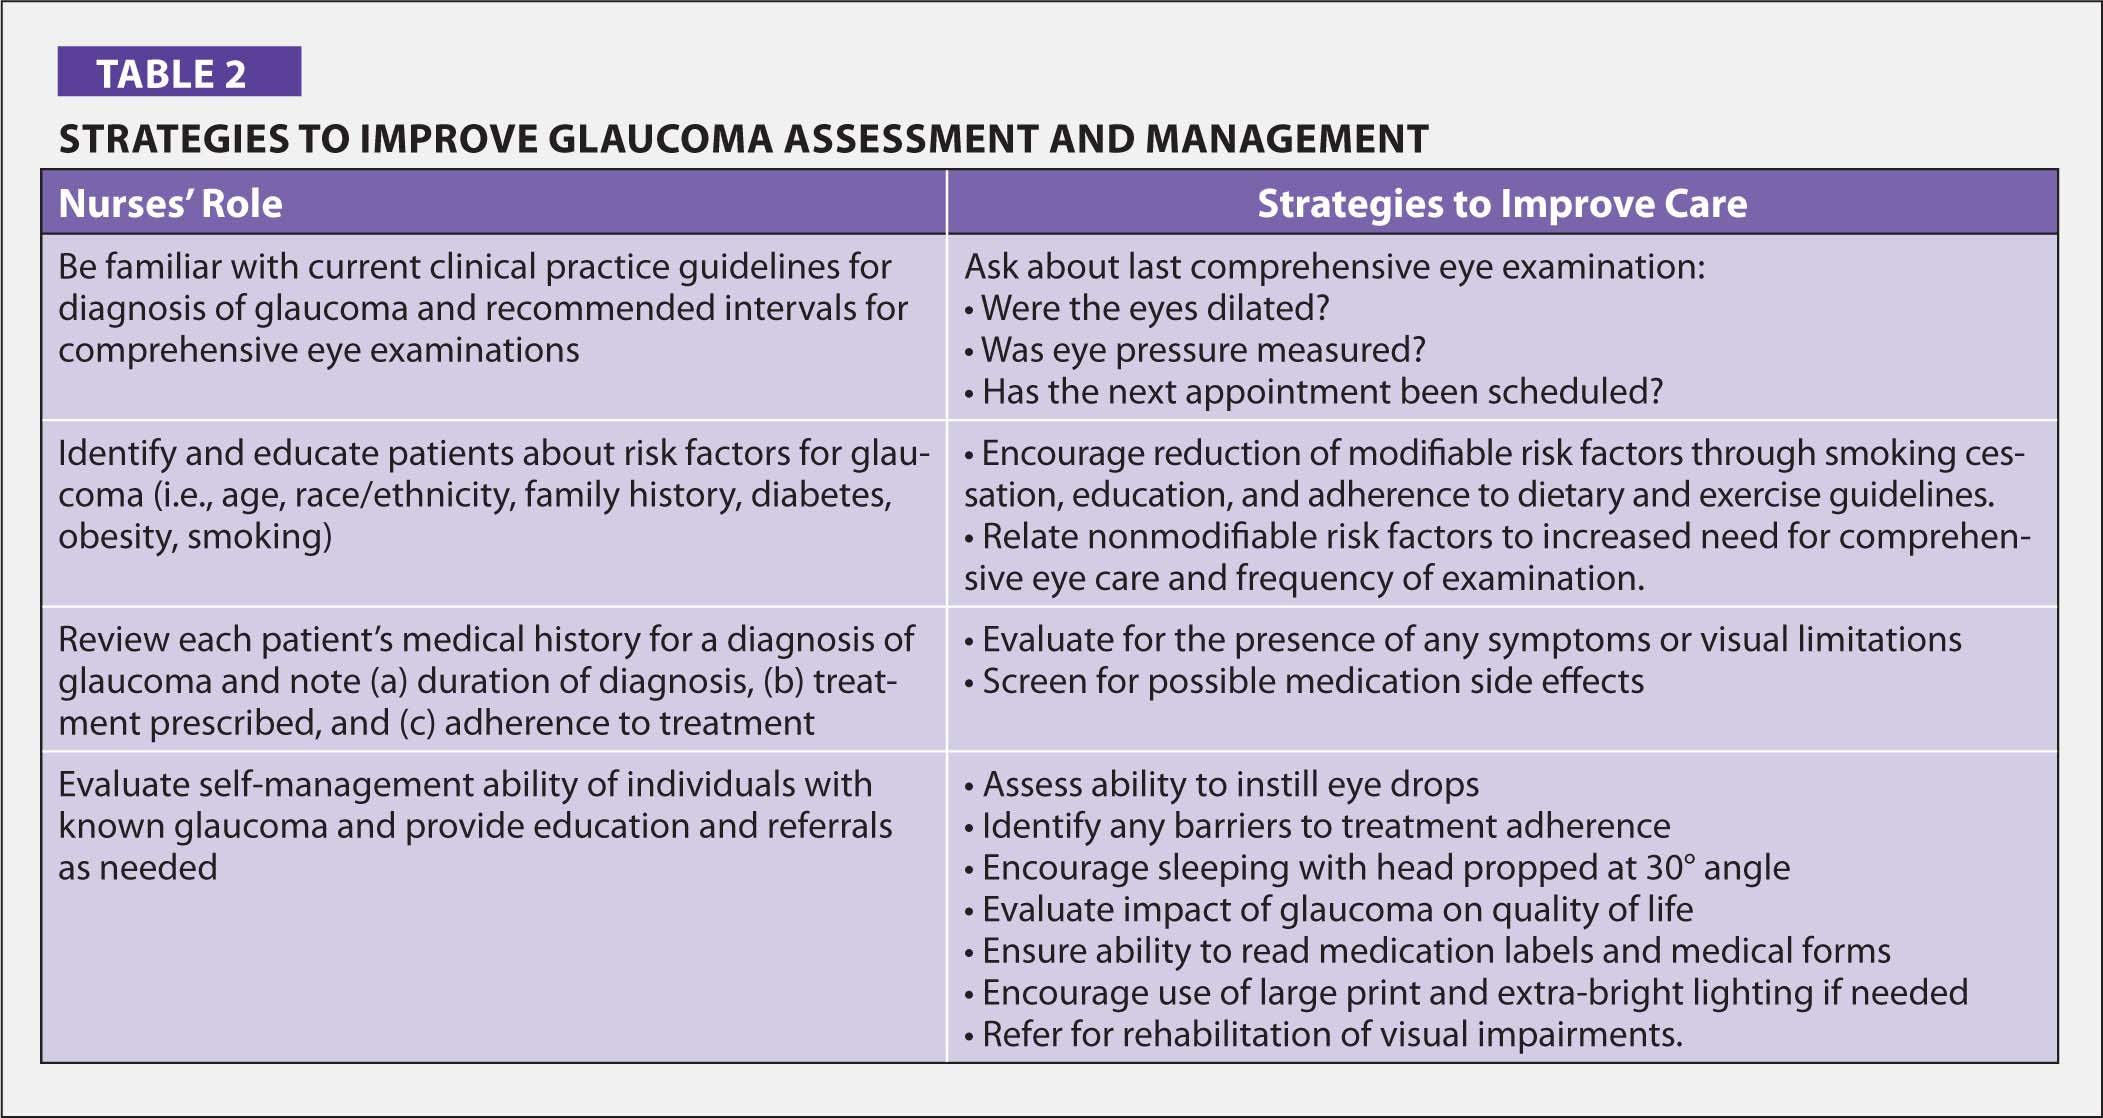 Strategies to Improve Glaucoma Assessment and Management